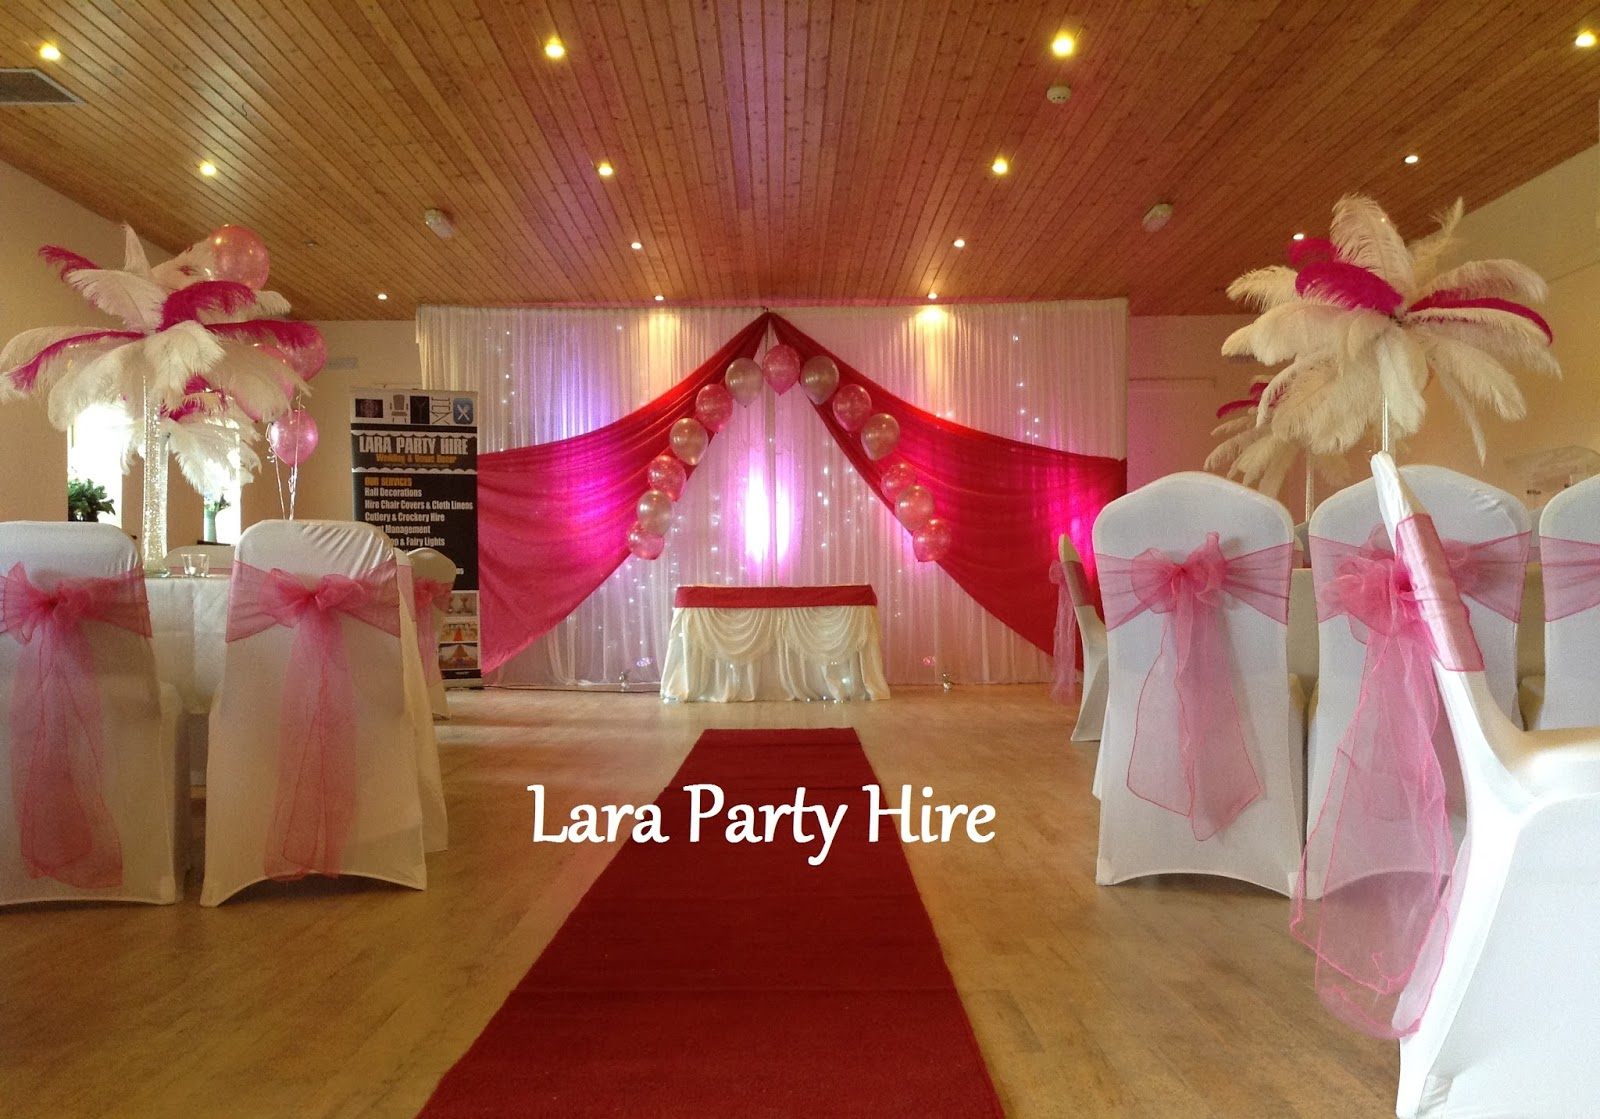 chair cover hire kerry steel design plans lara party 6m backdrop 150